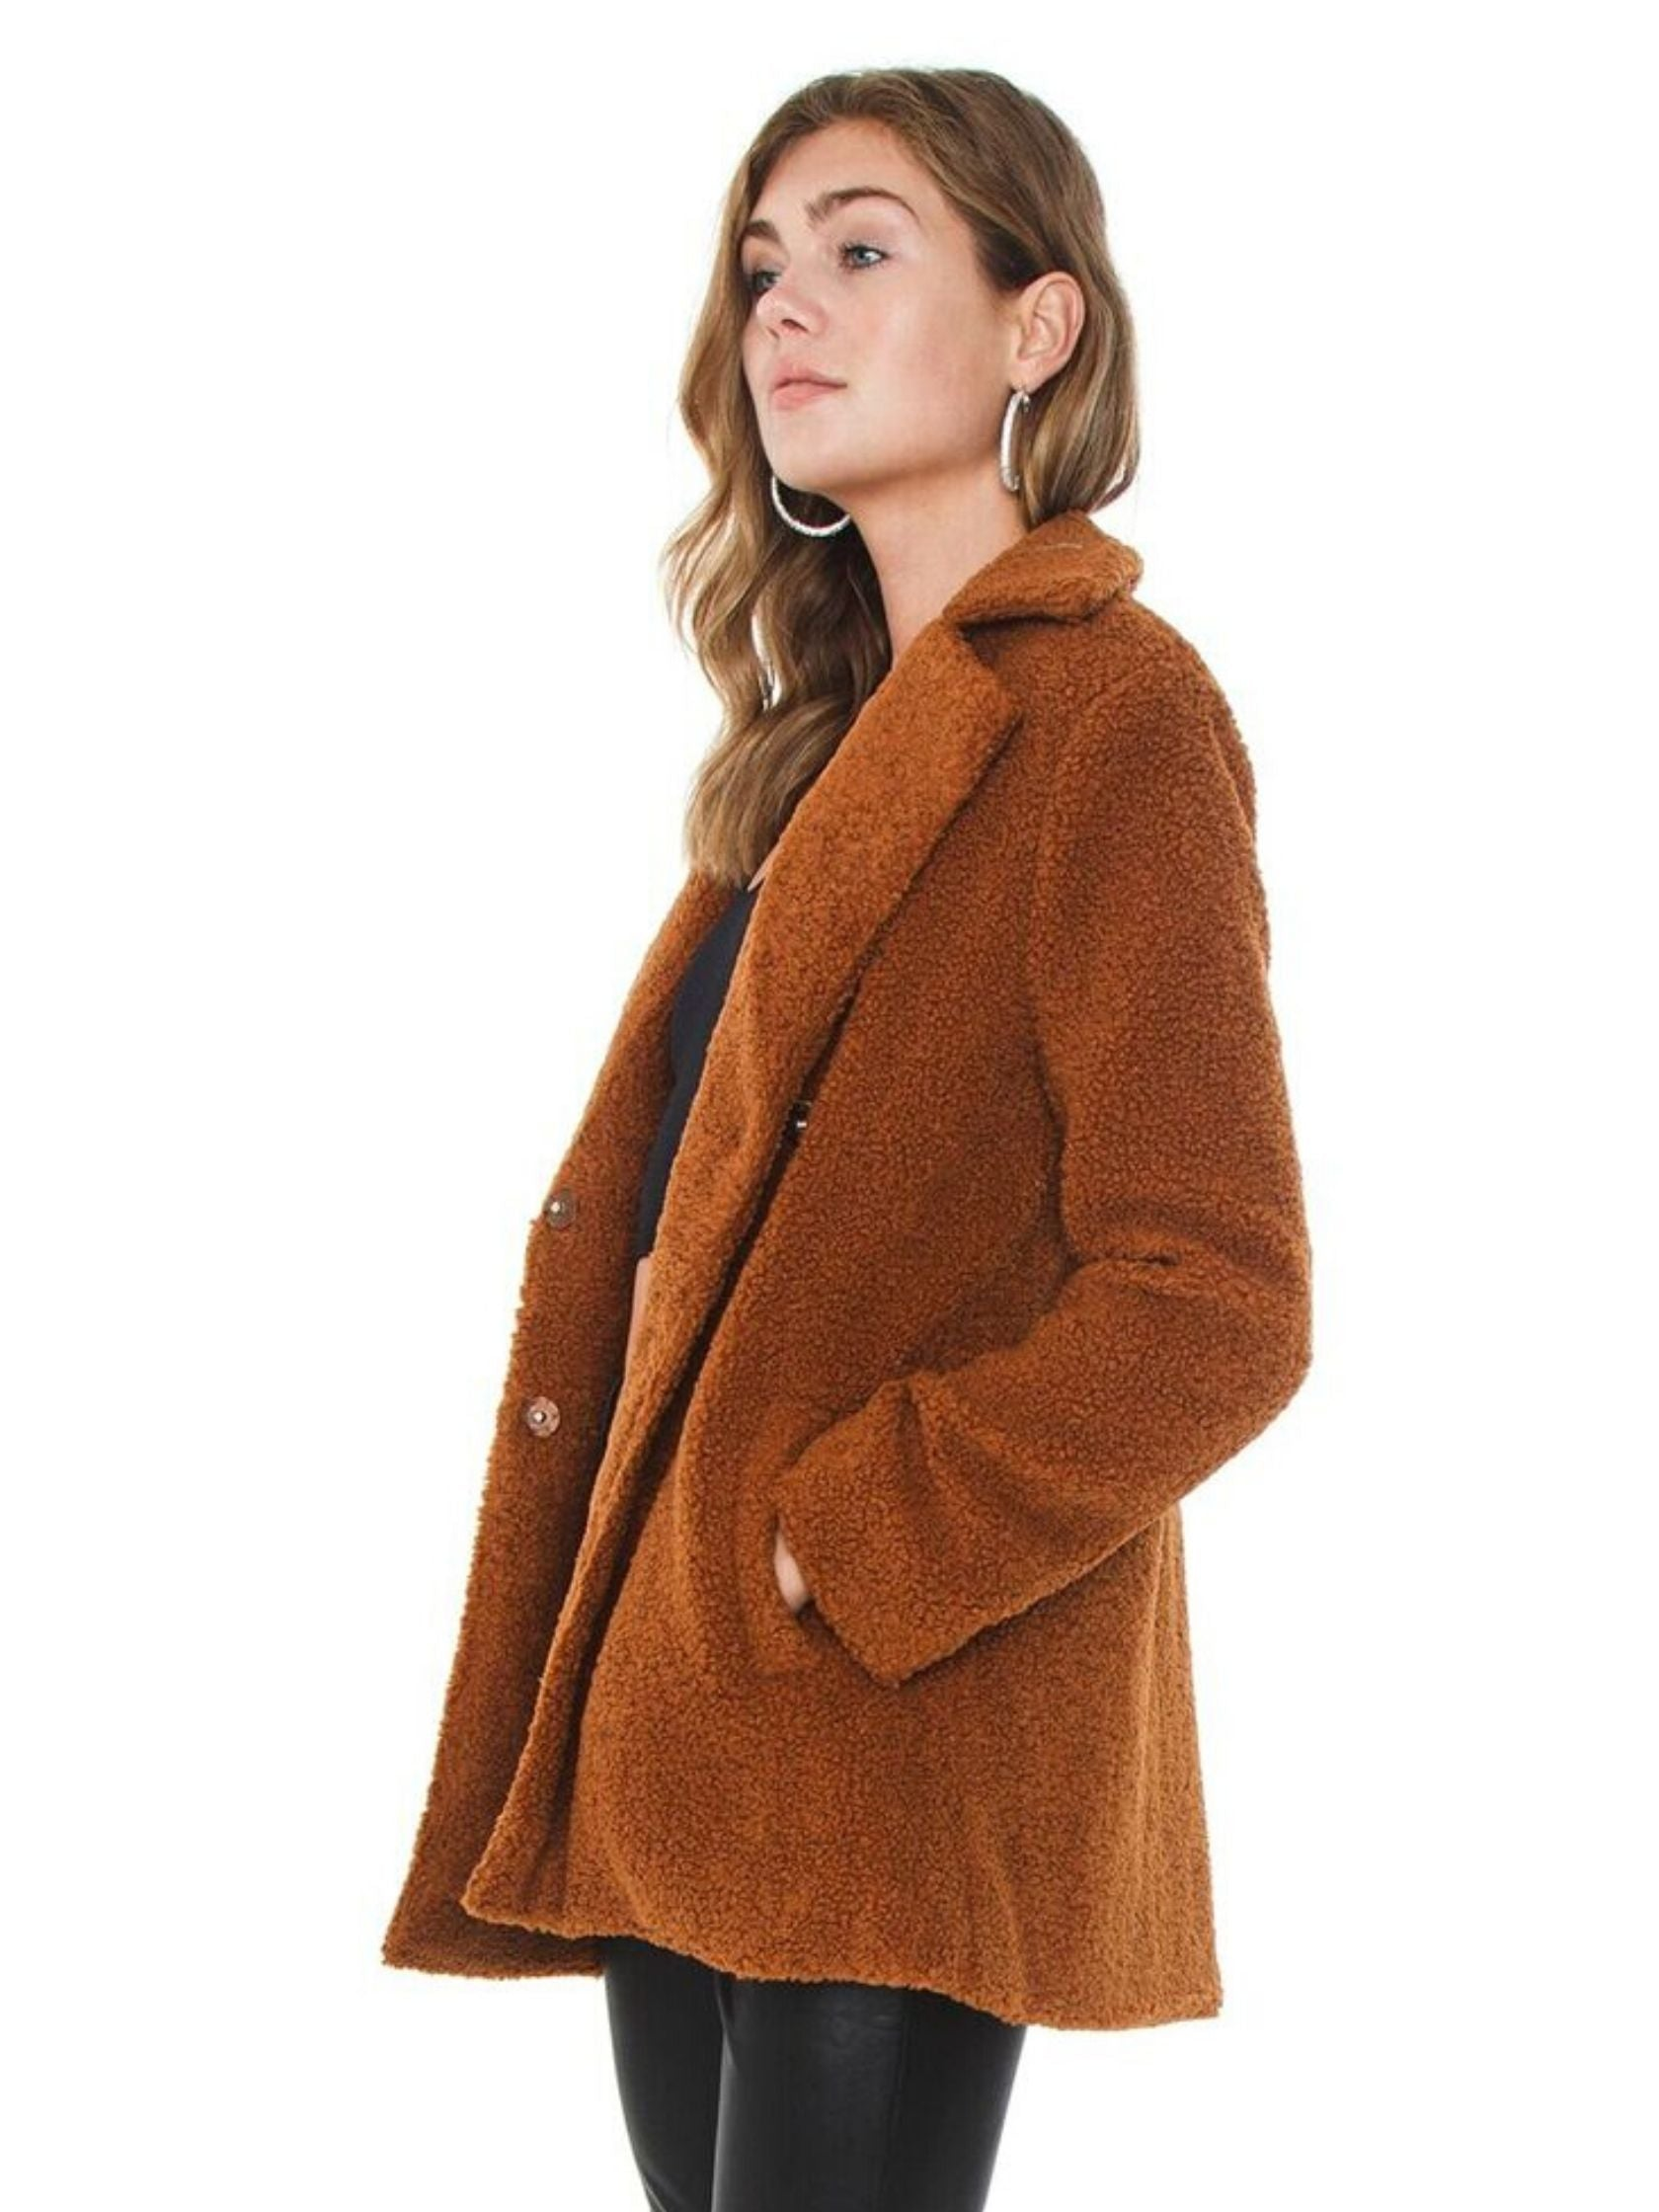 Women wearing a jacket rental from MINKPINK called Game Of Chance Shearling Coat